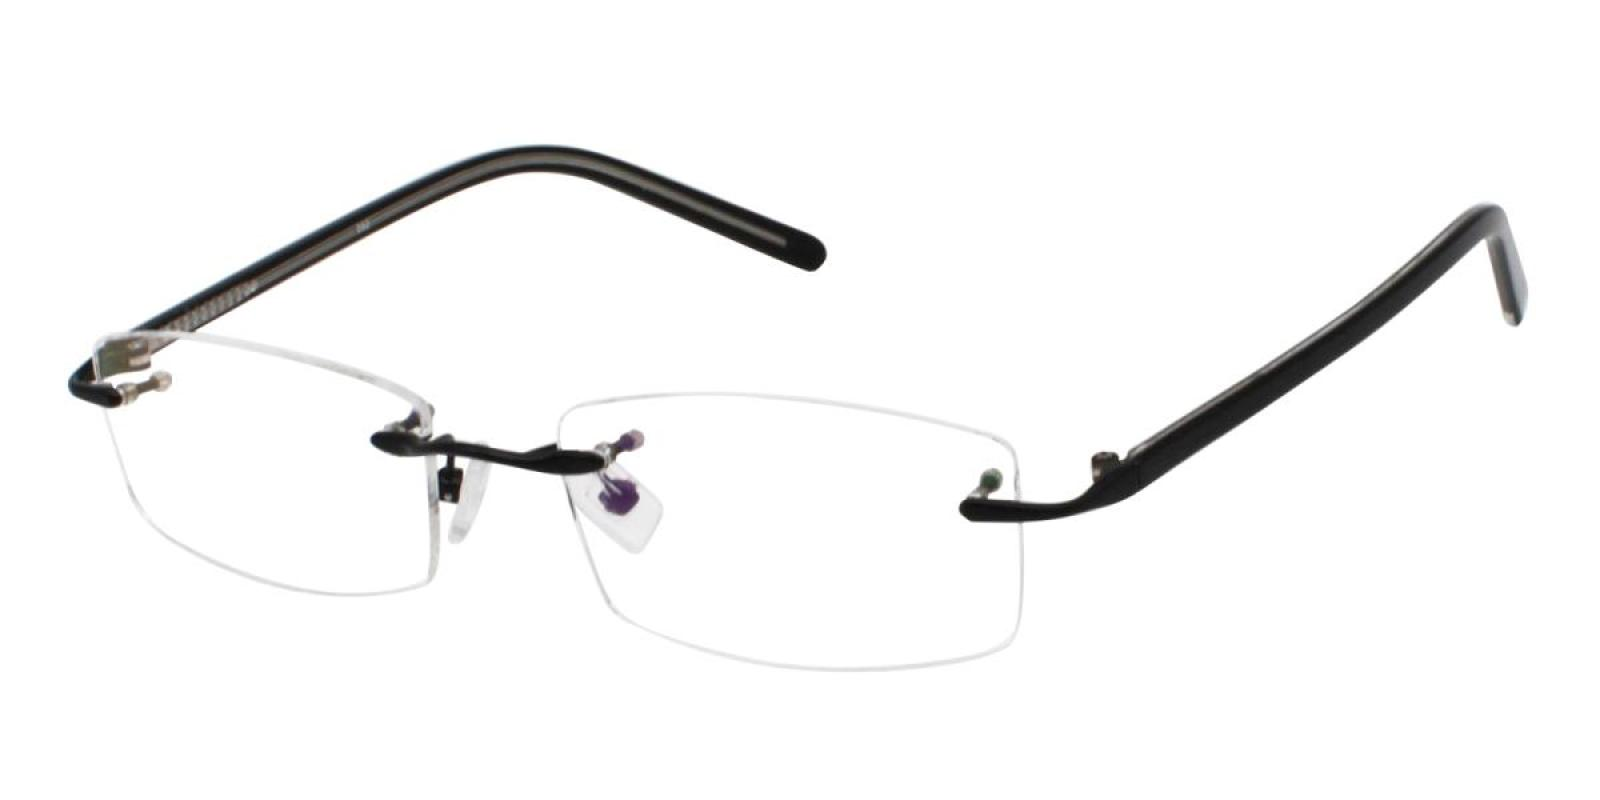 Billings-Black-Varieties-Metal-Eyeglasses-additional1